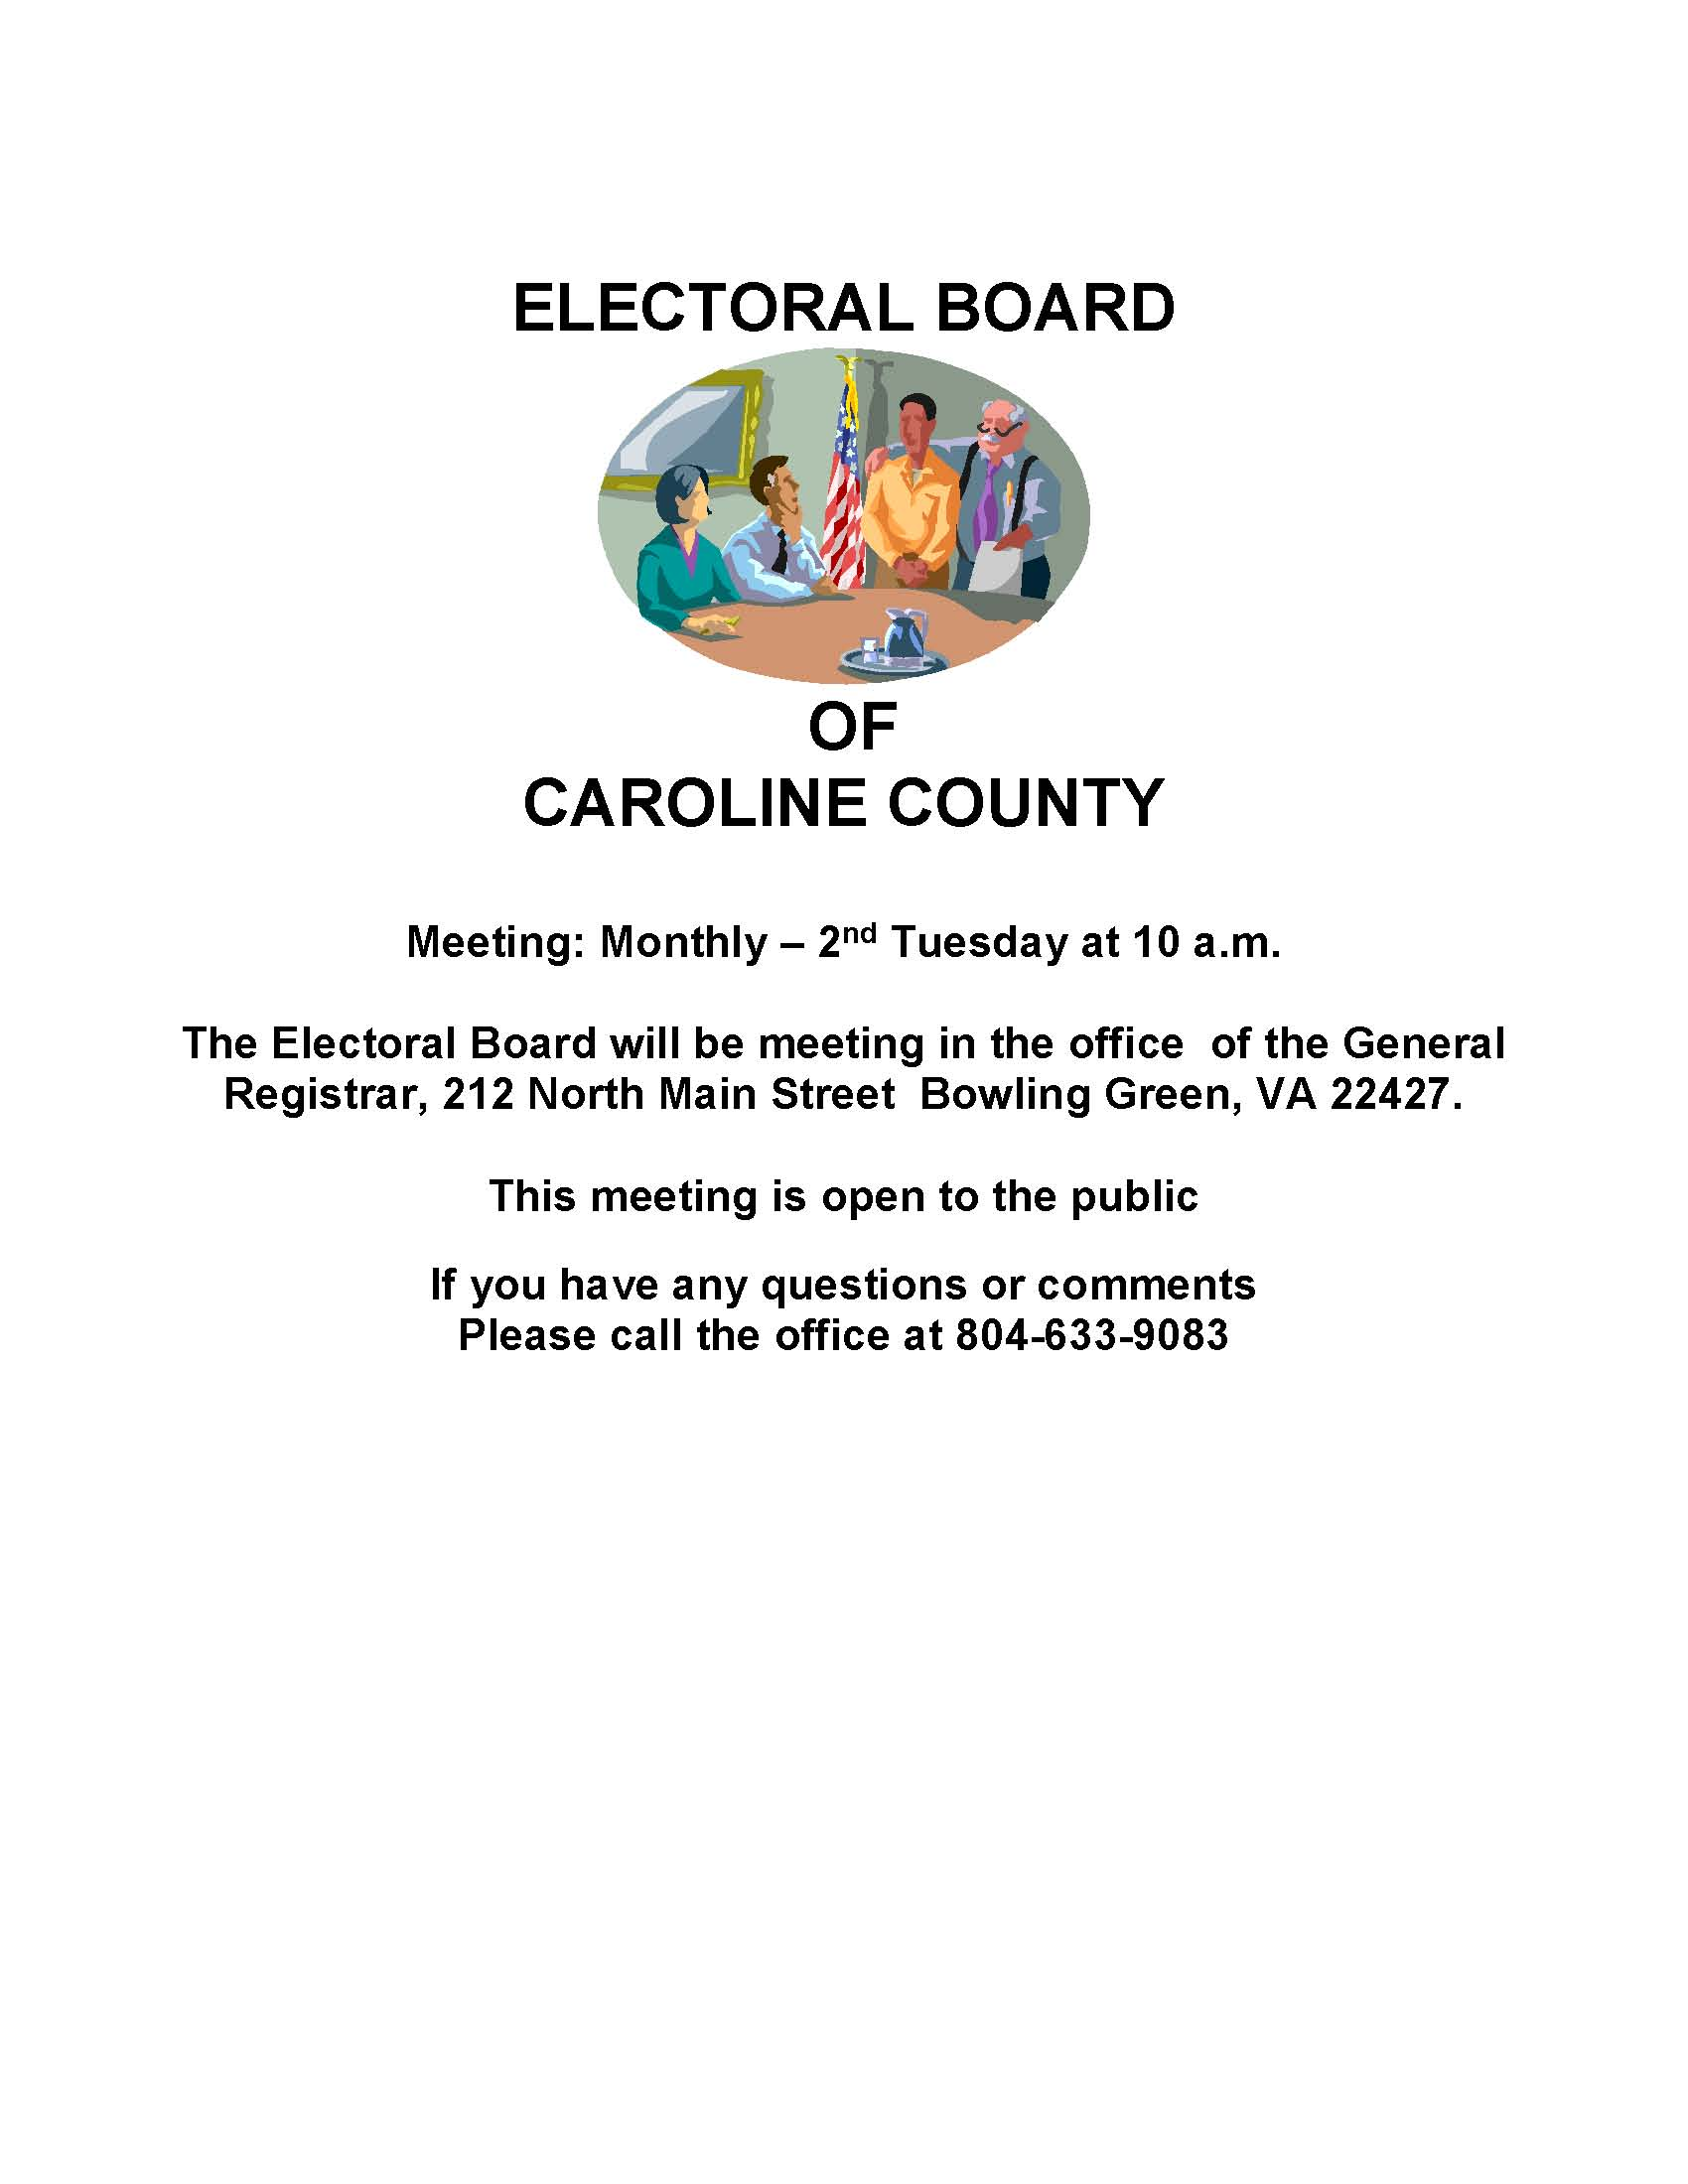 Caroline County Electoral Board Meetings 2020 Monthly